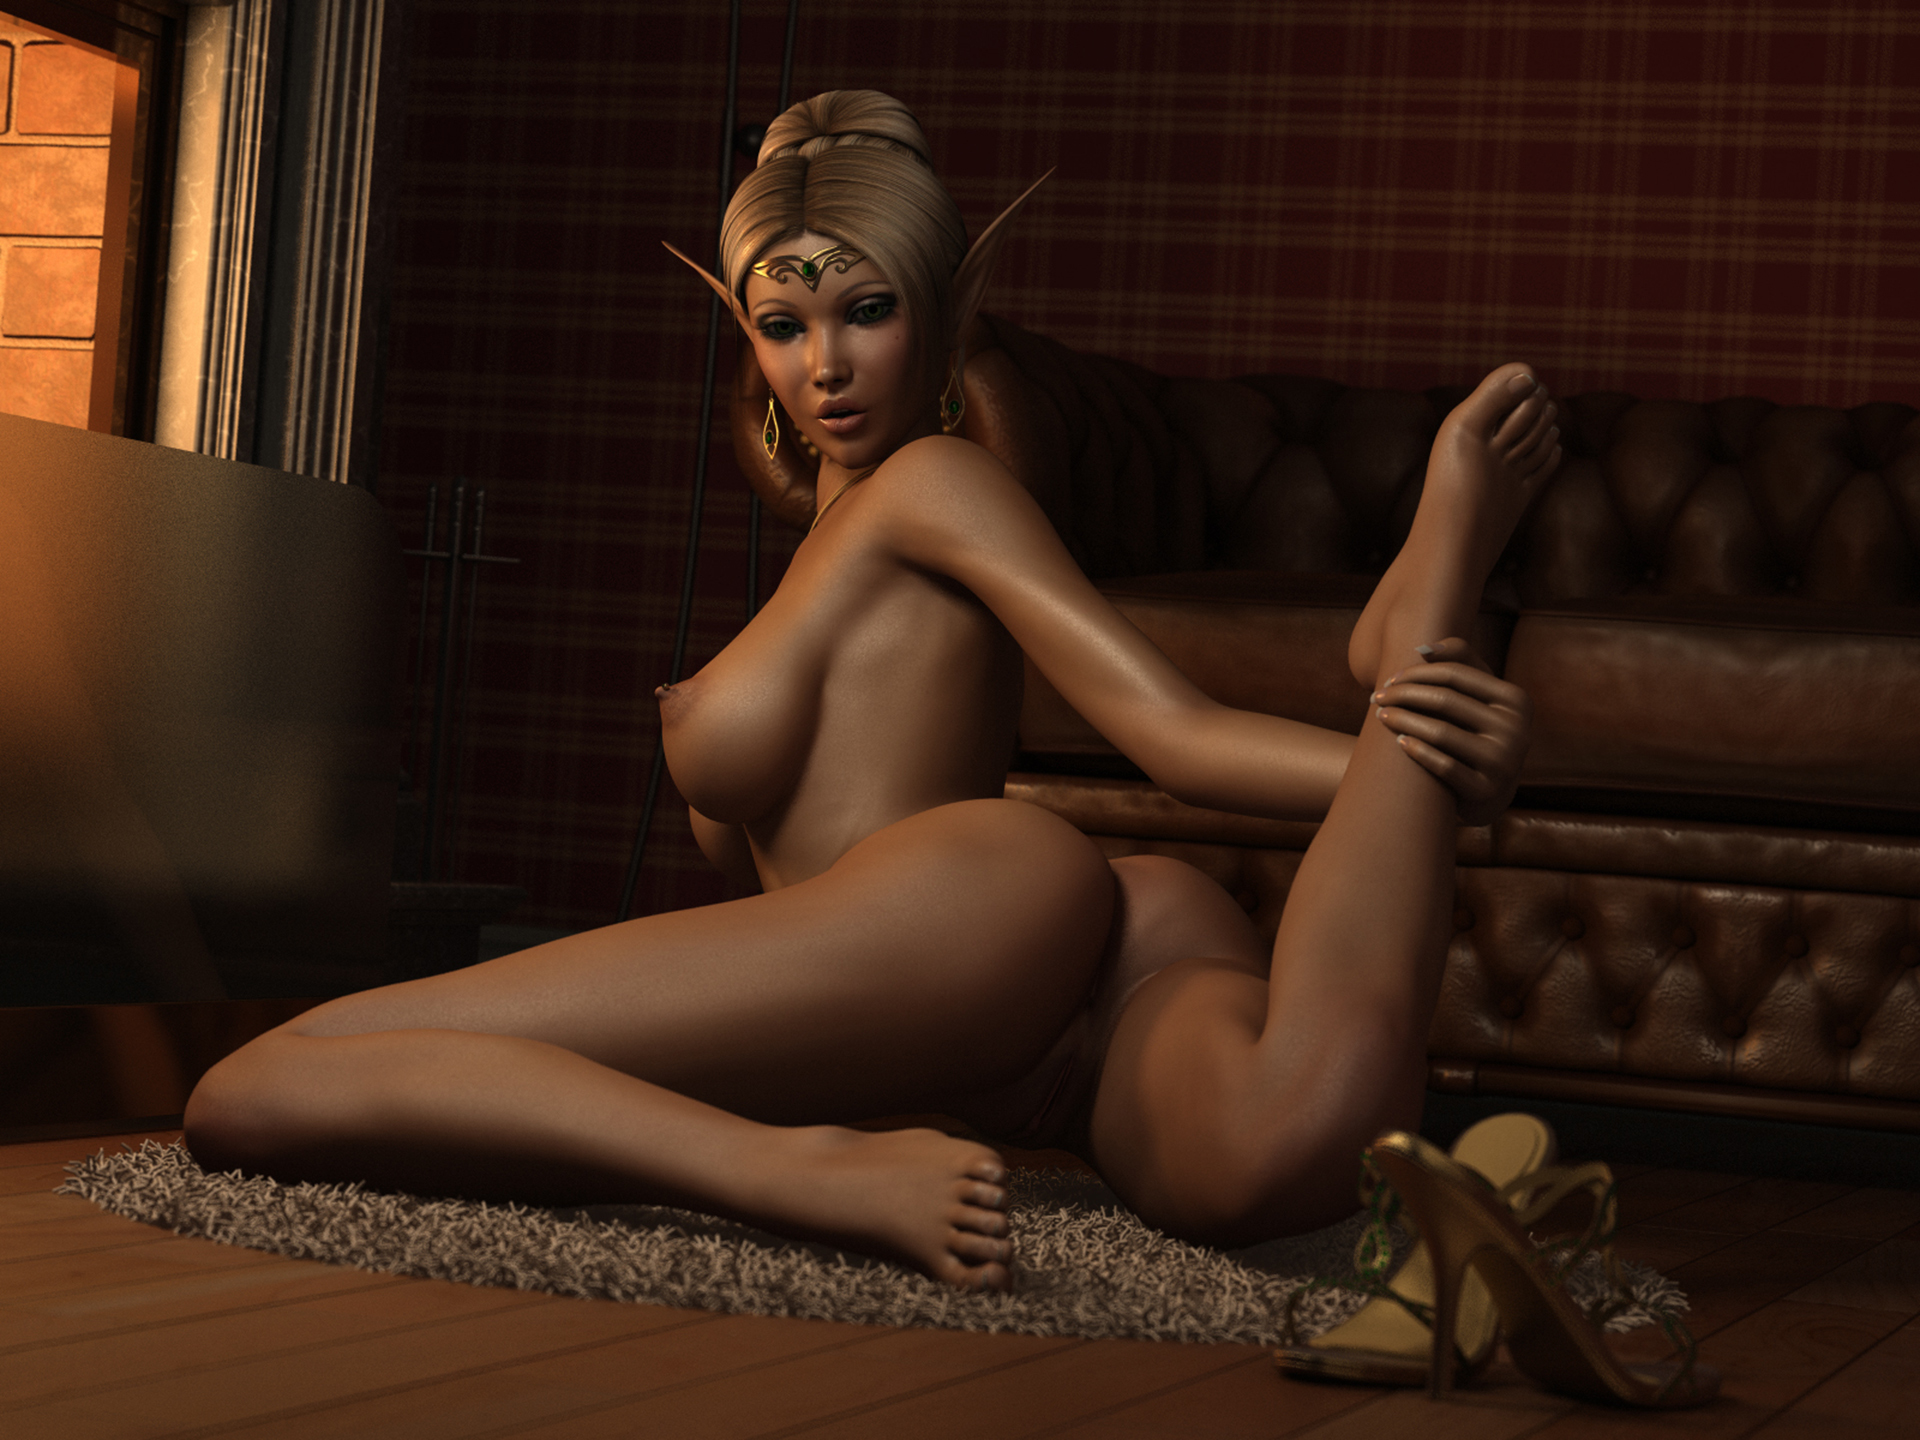 Wallpaper demon nude 3d hentay scene